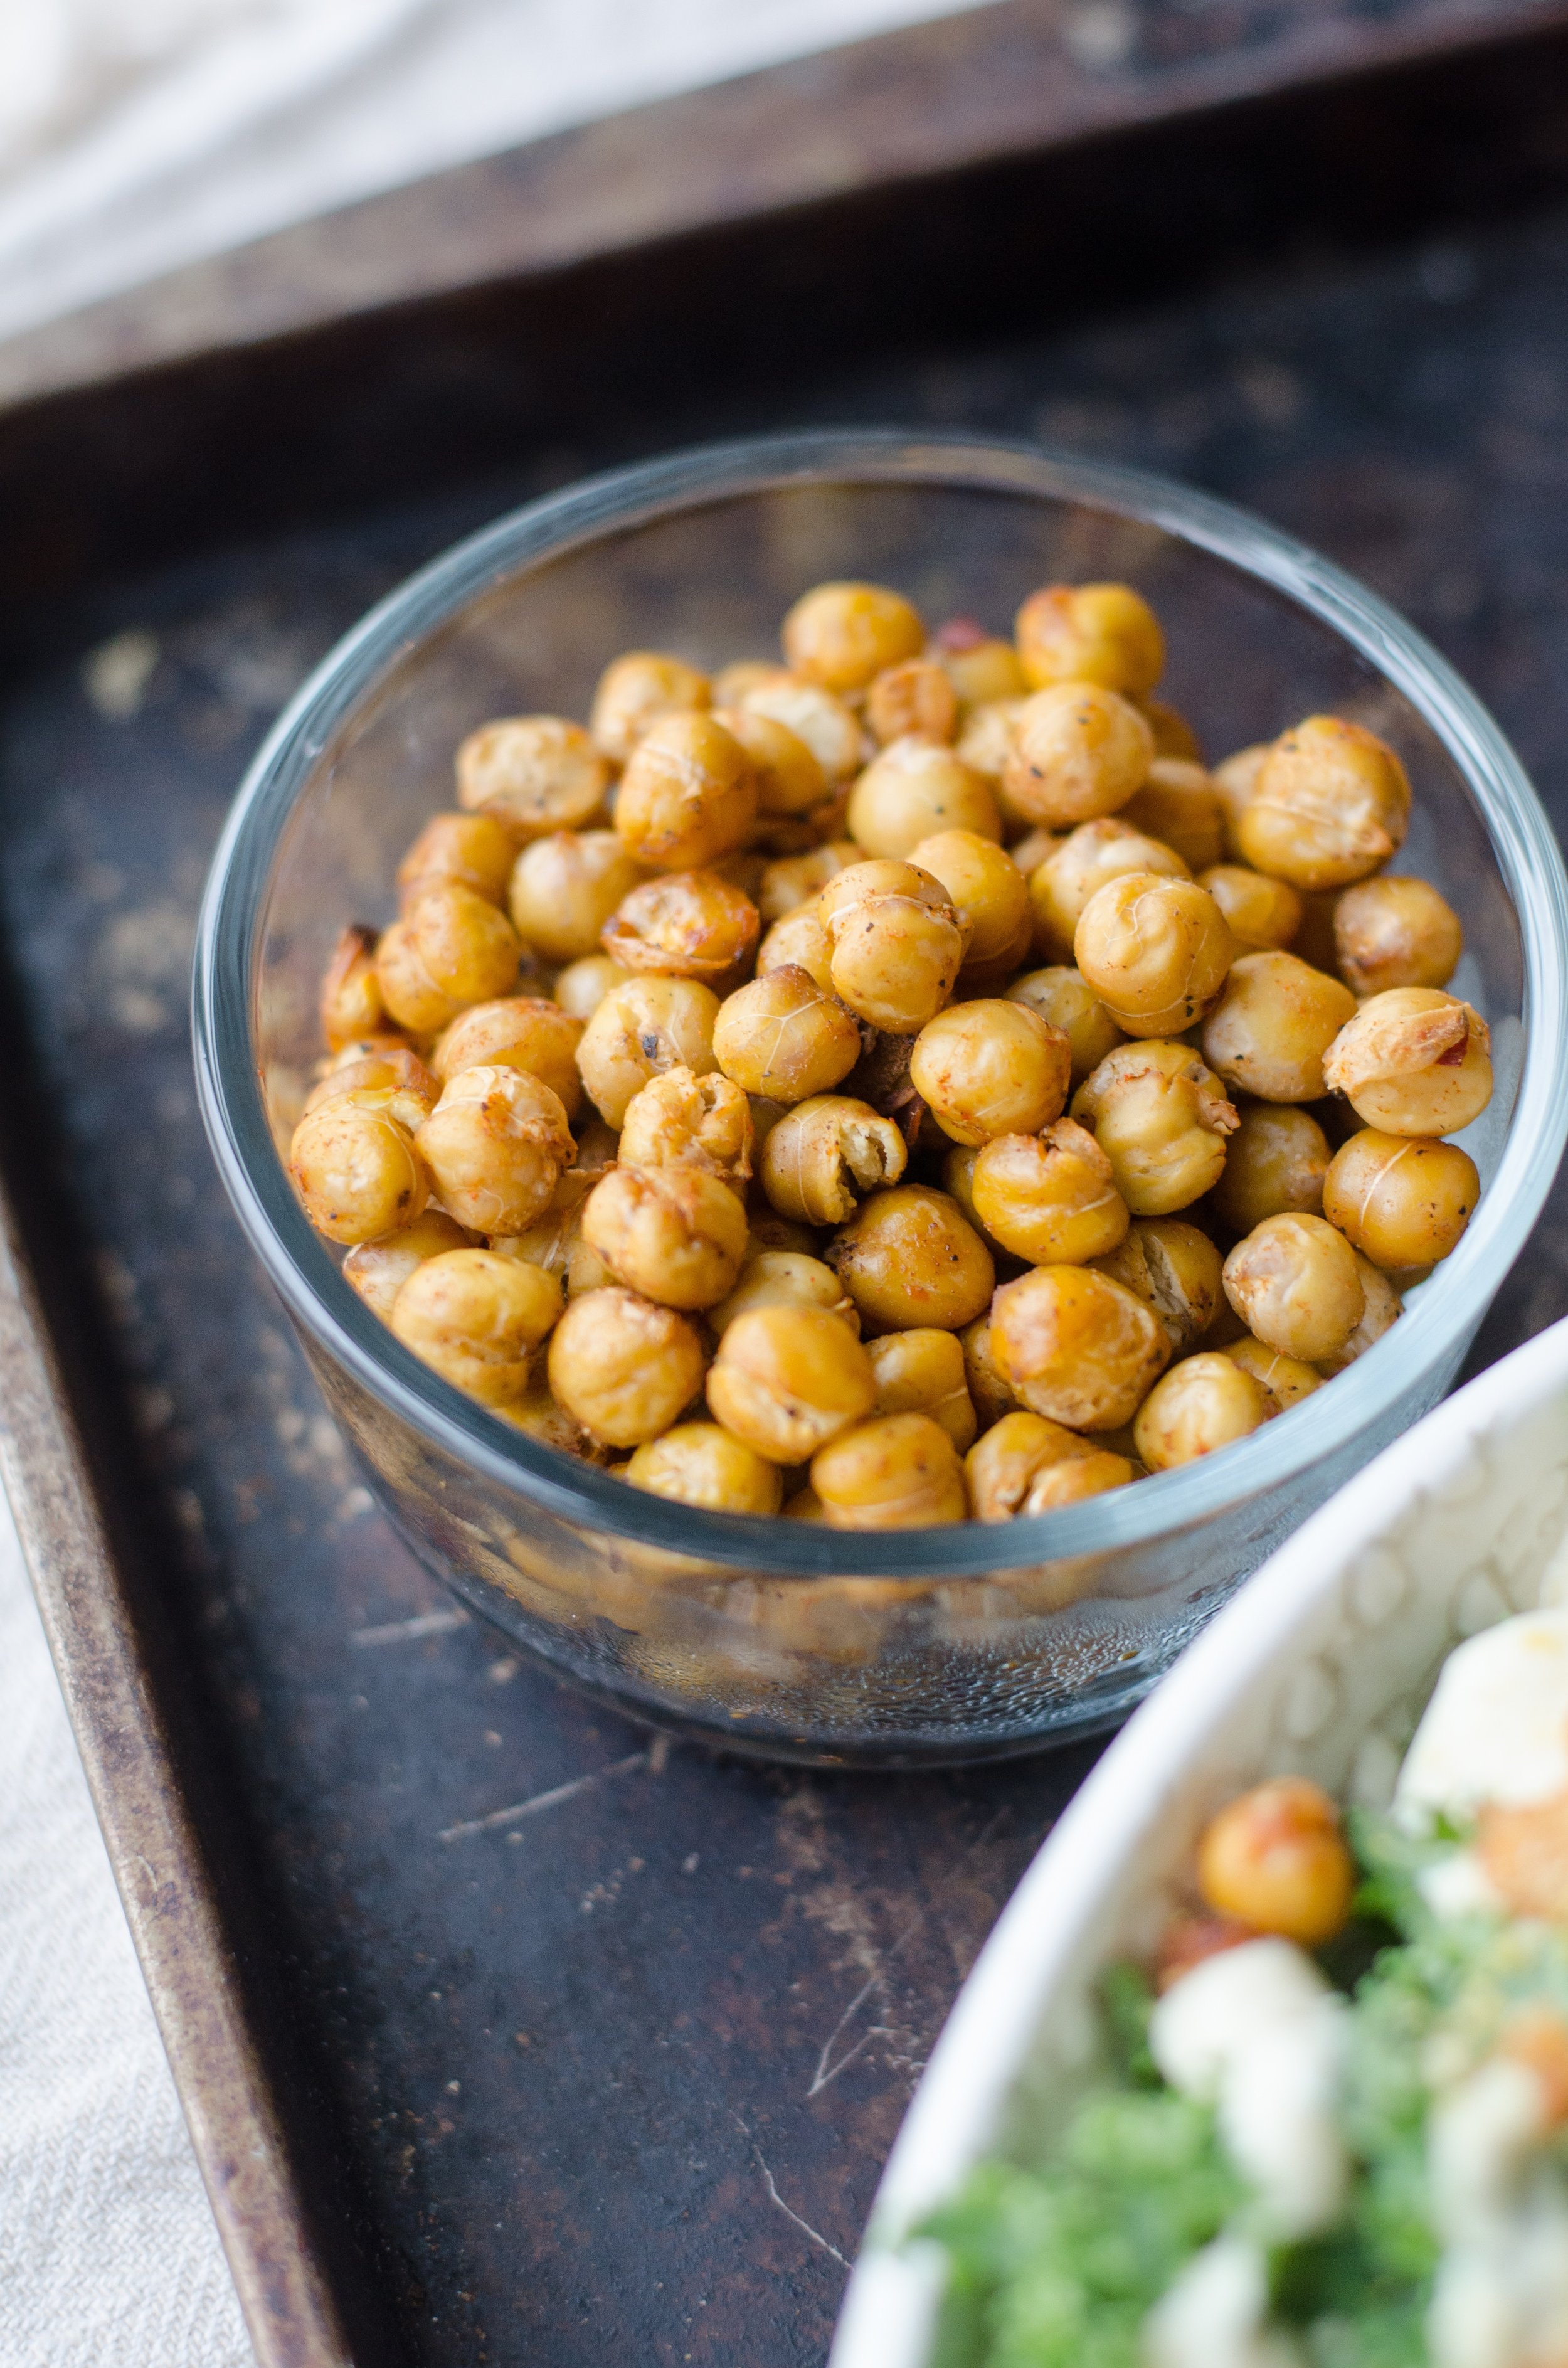 CHickpeas are part of the legume family. Photo by Deryn Macey.